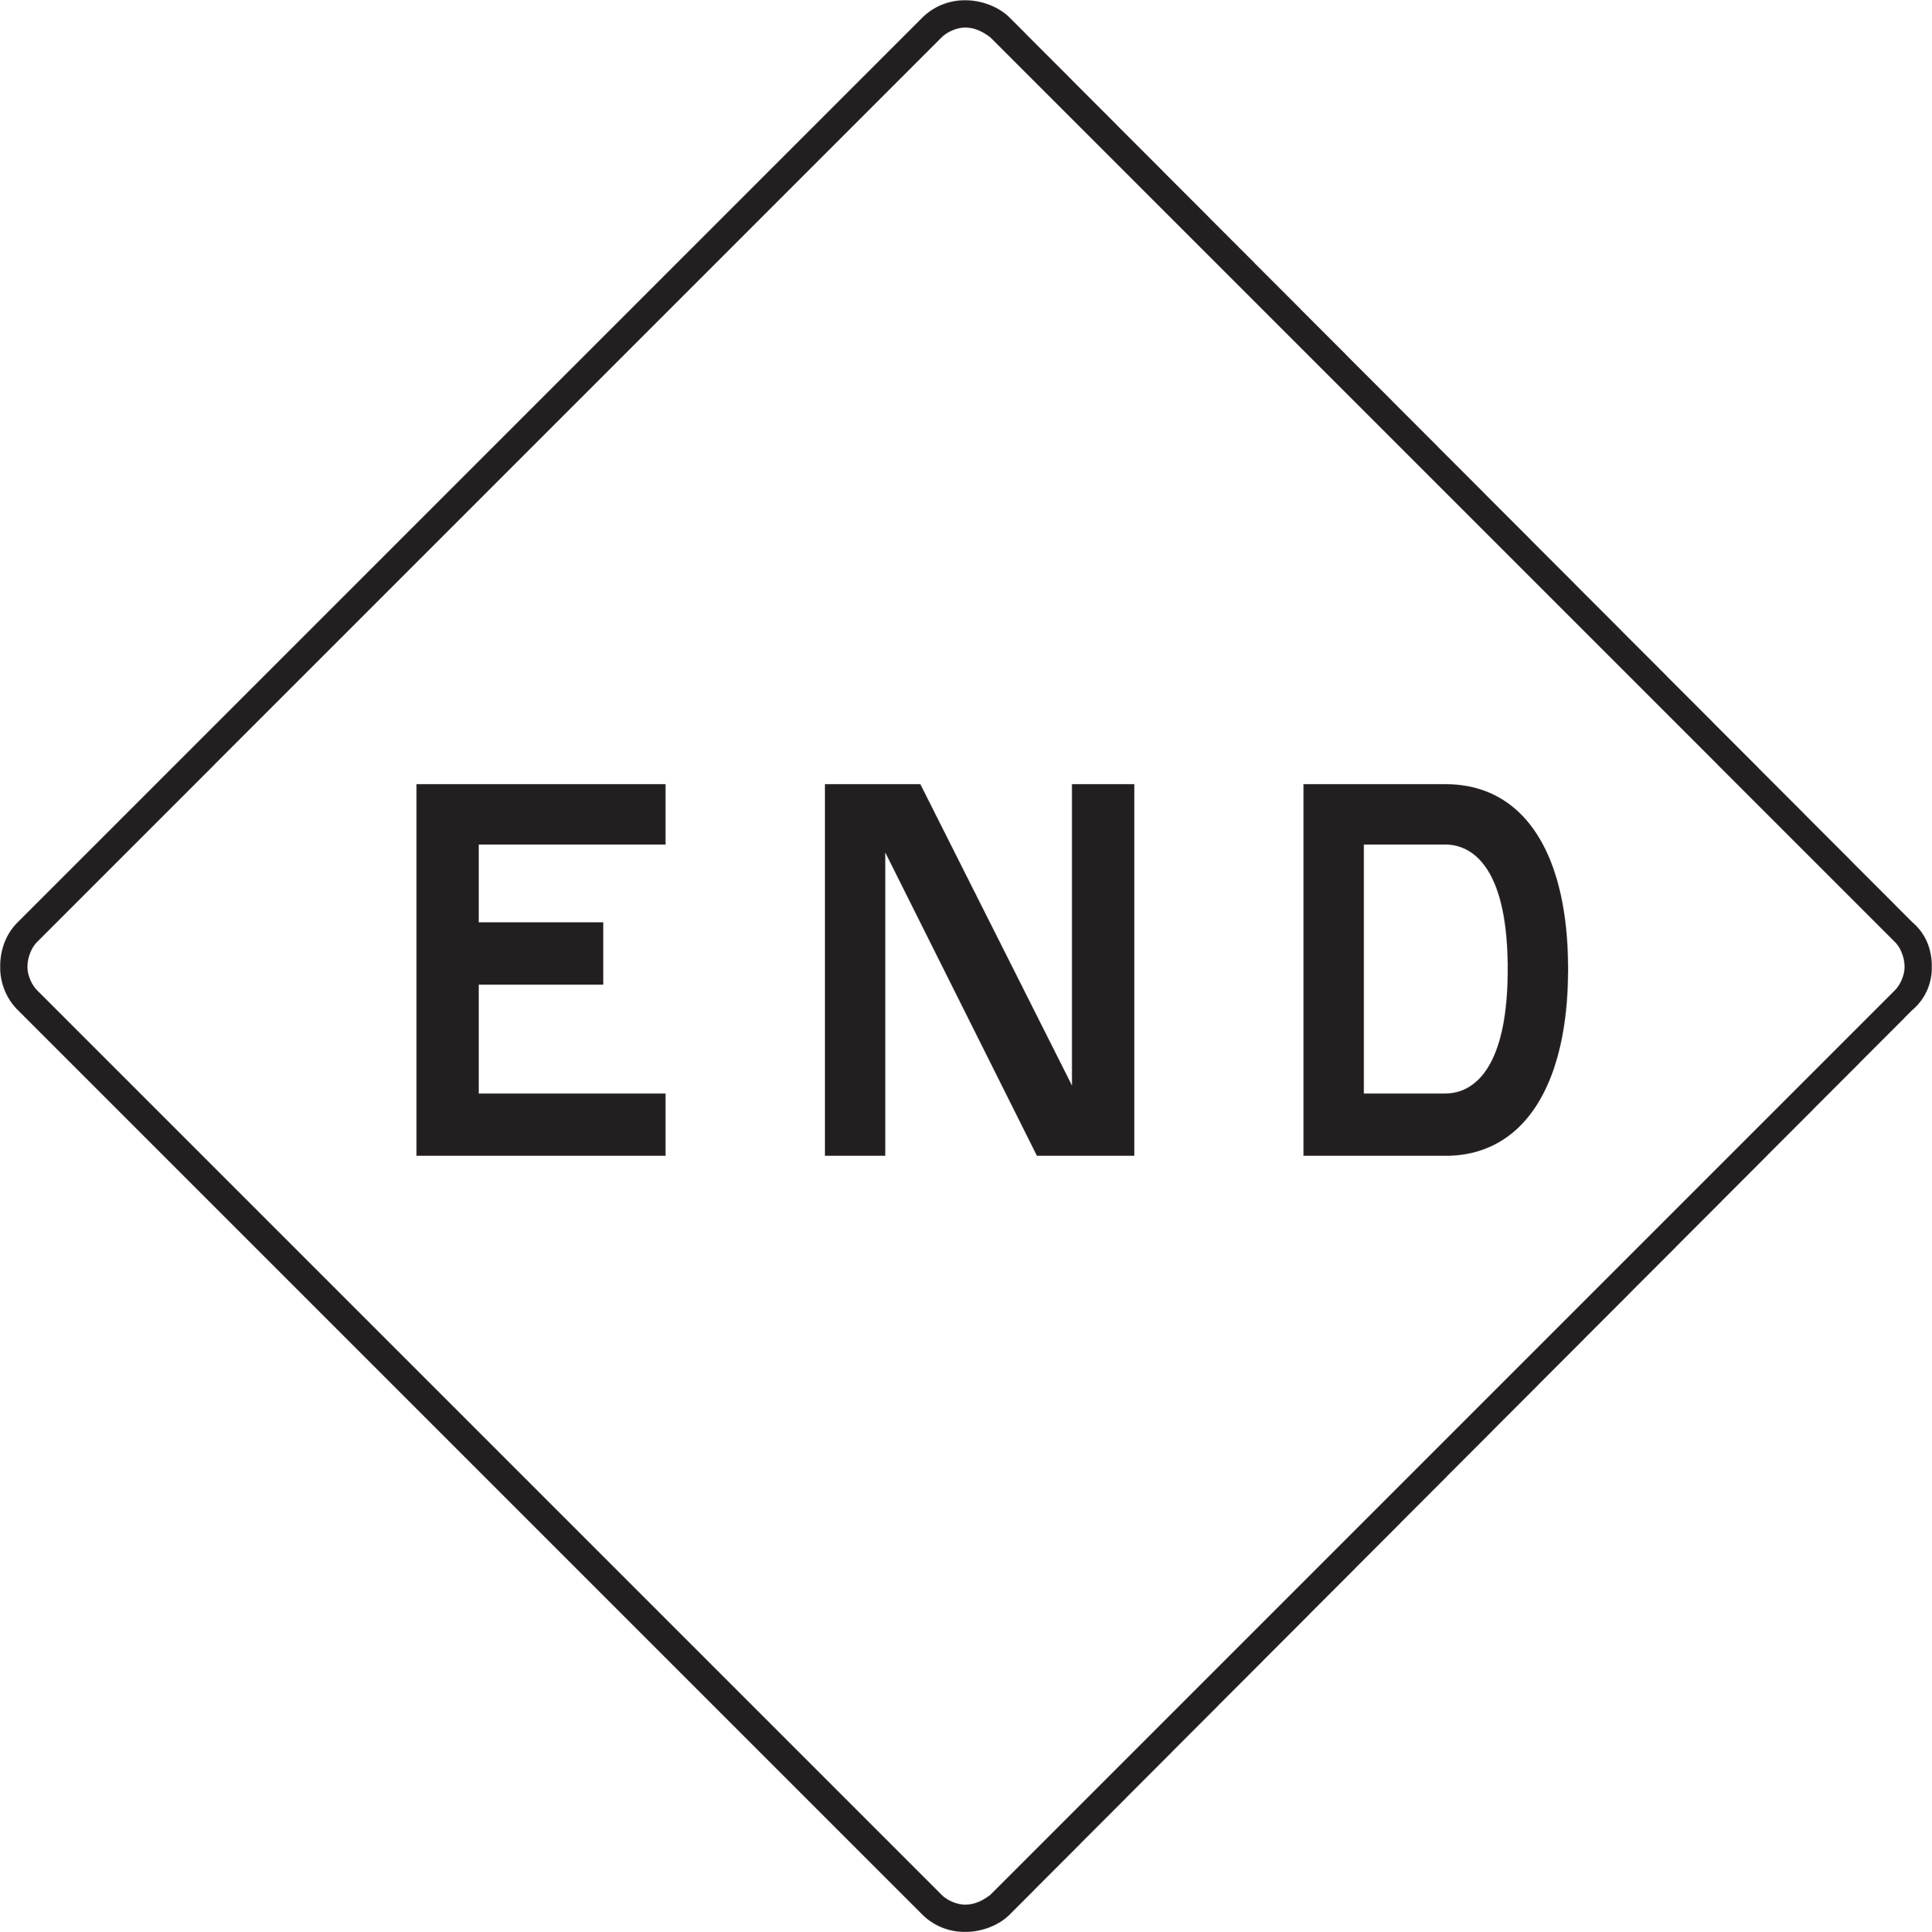 End clipart black and white Free Ending Images Panda Clipart